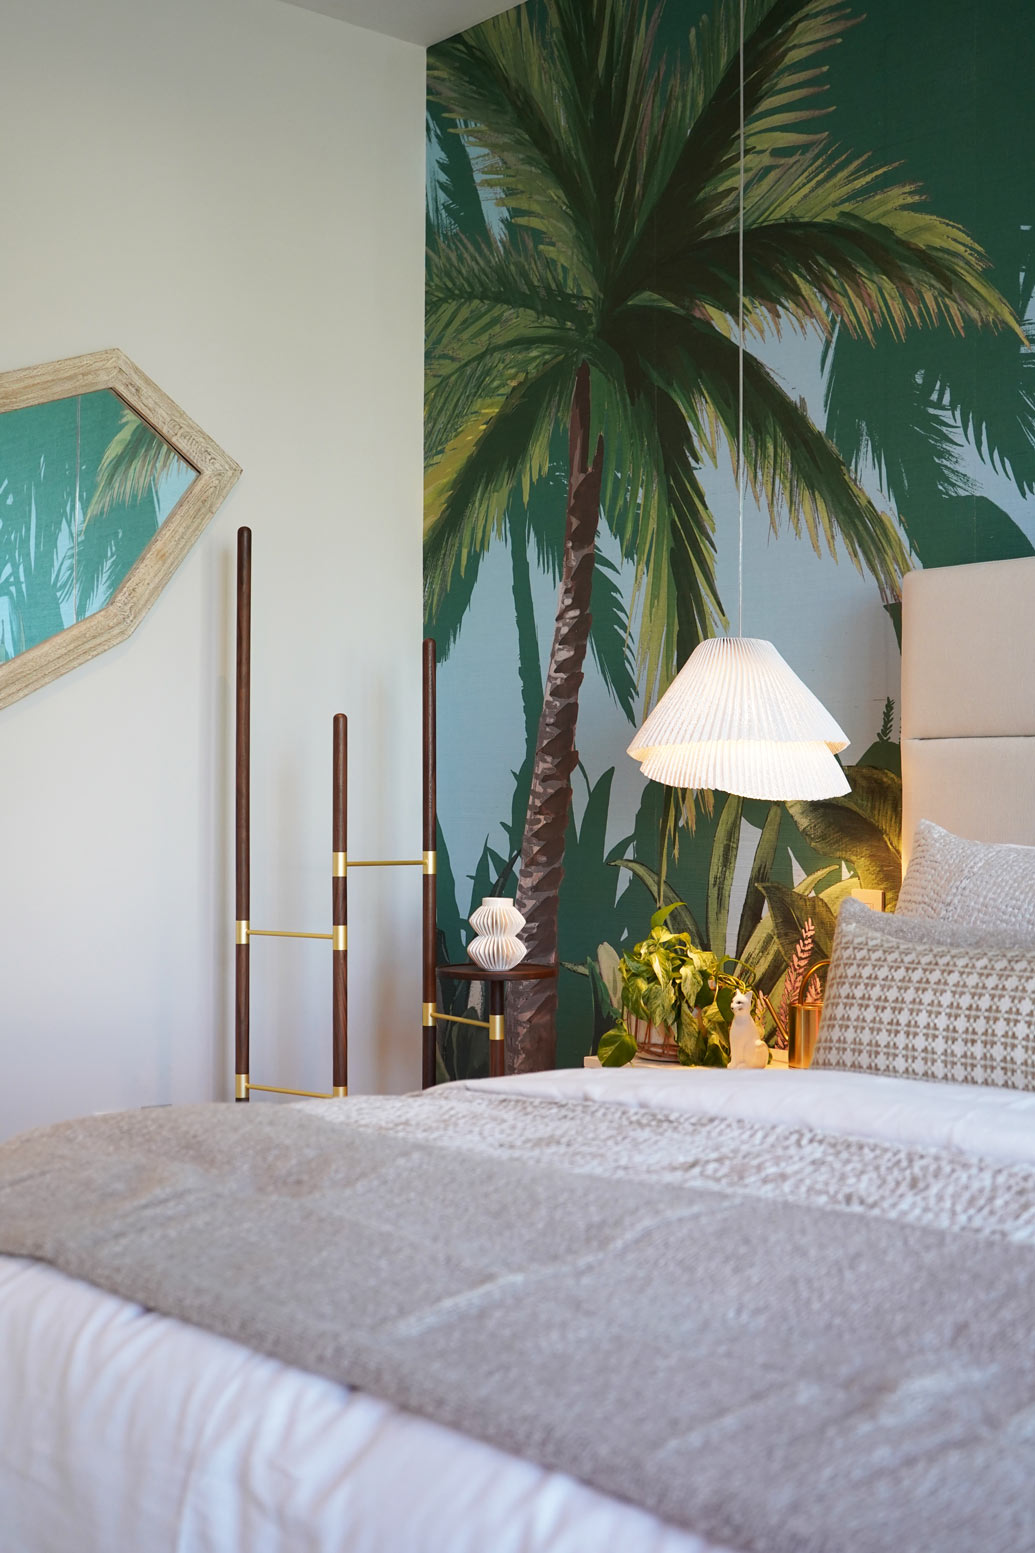 A Tropical Resort-Inspired Guest Room Design